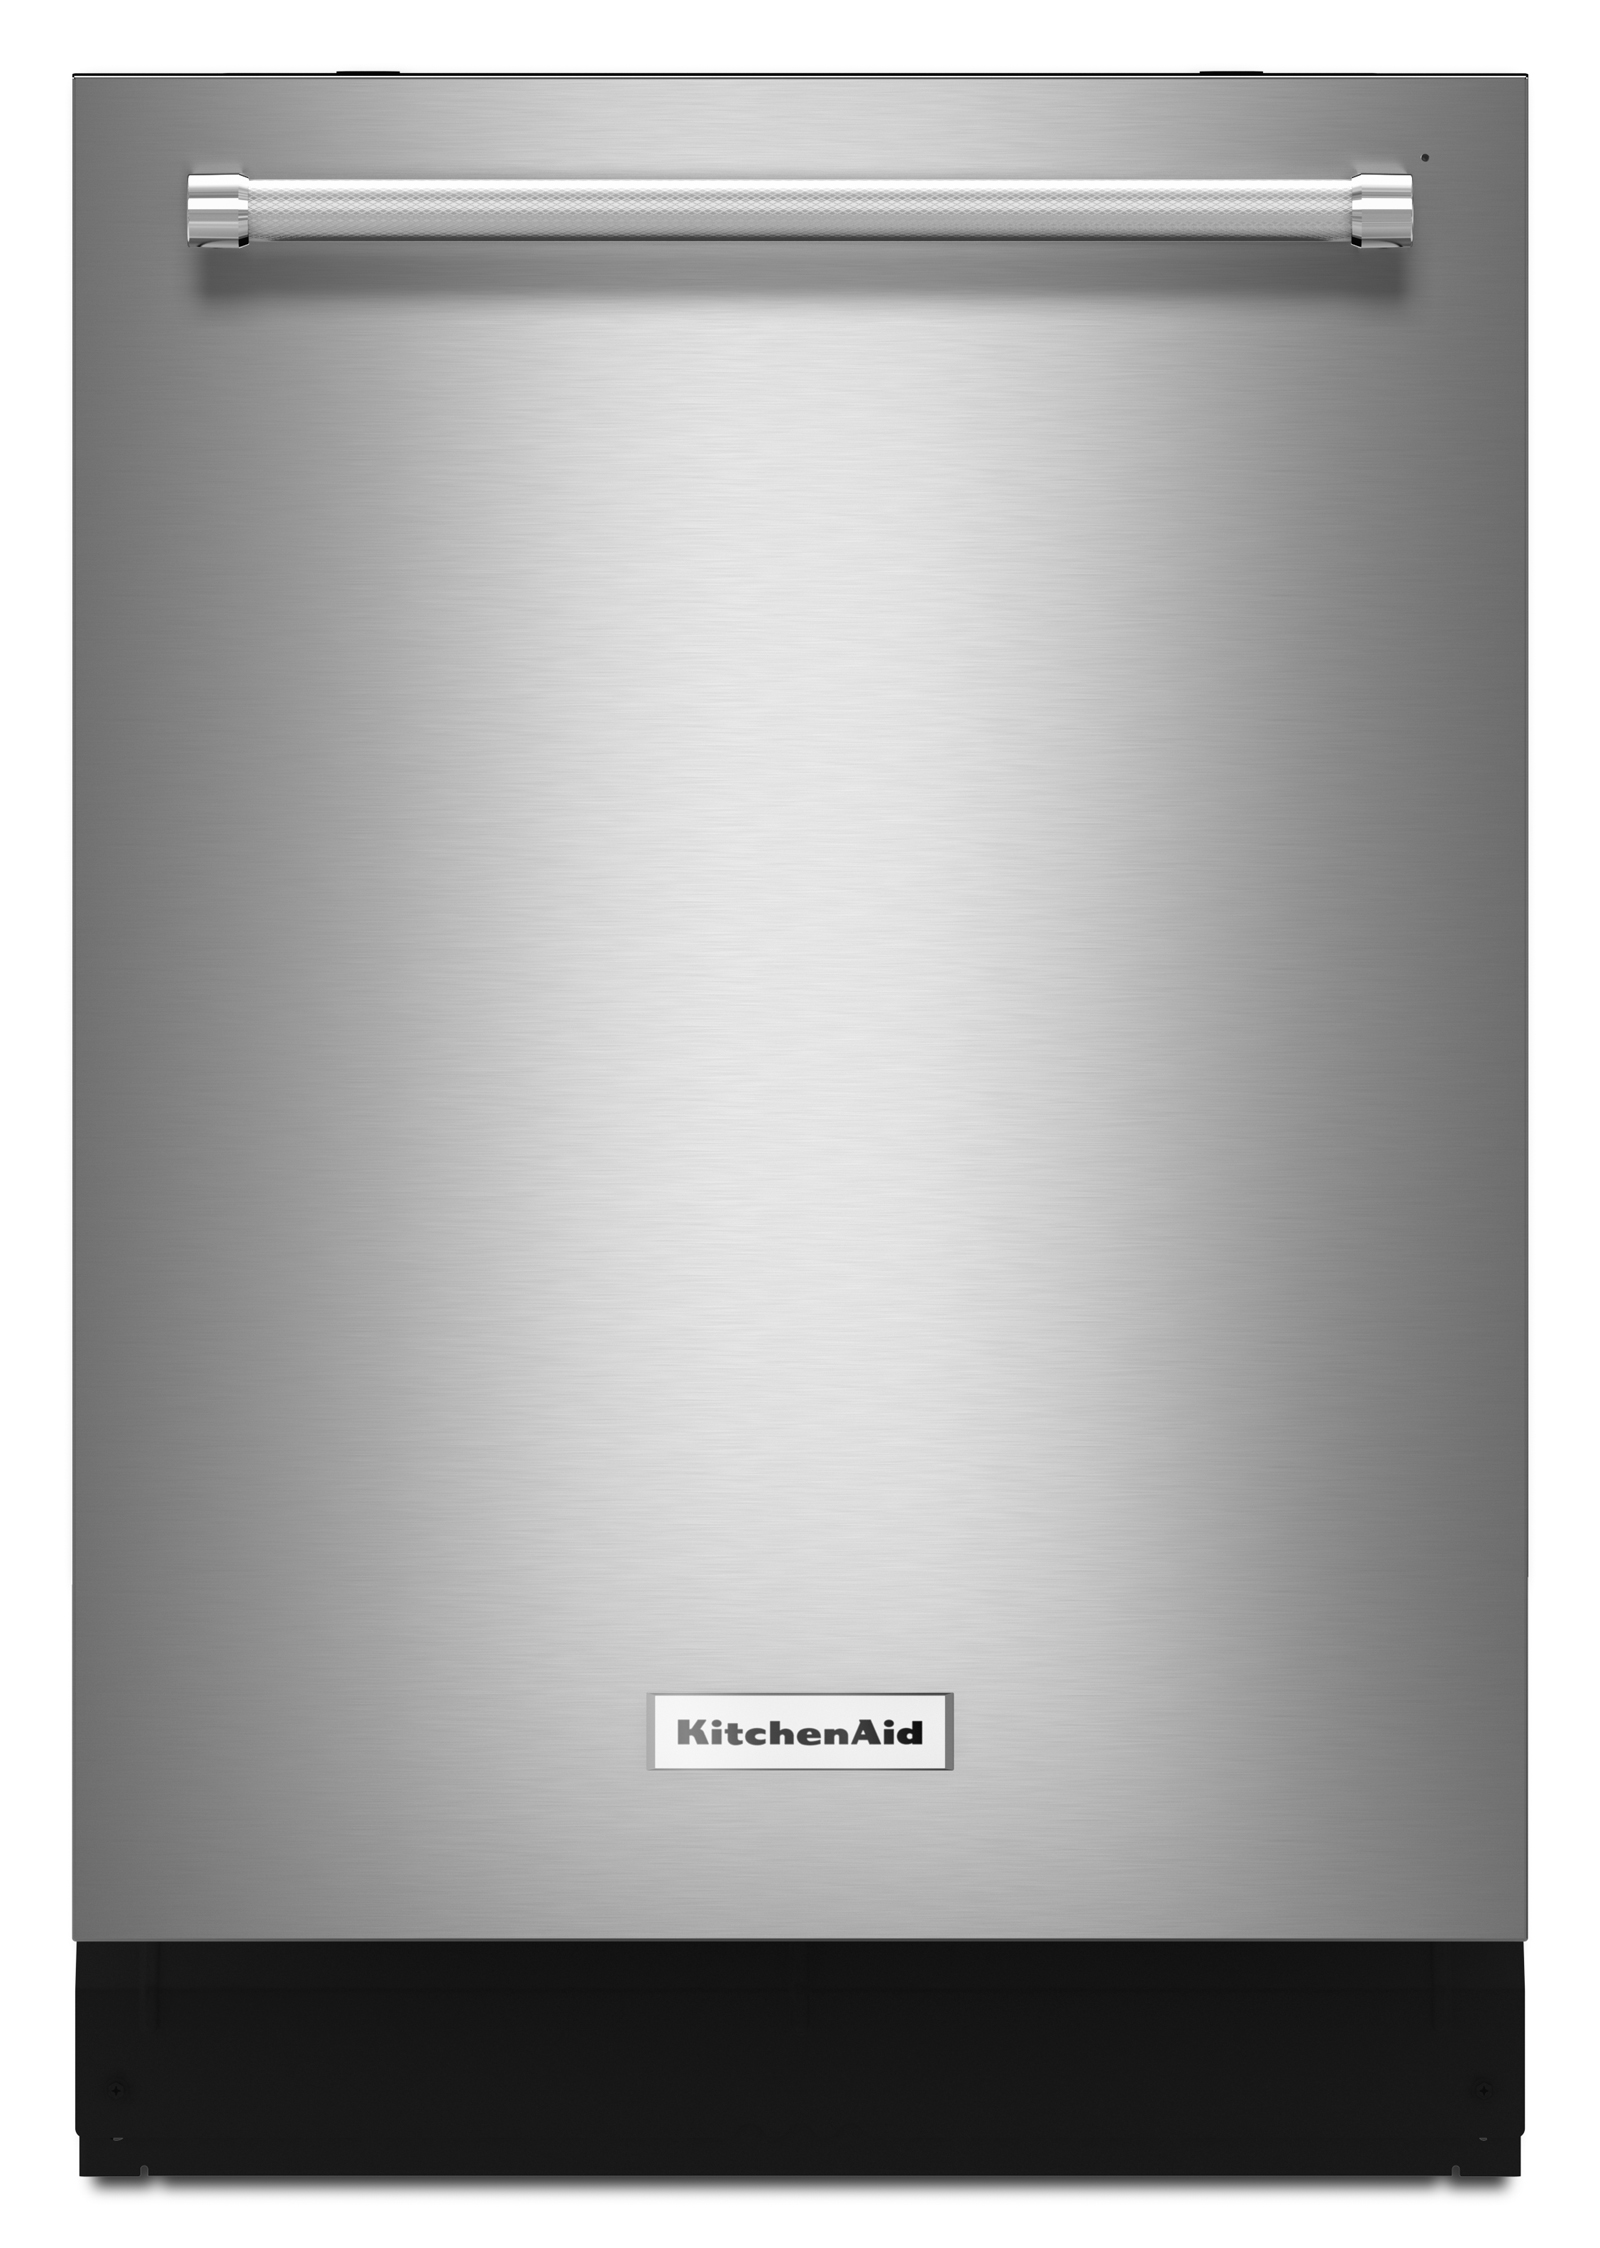 KitchenAid KDTM354ESS 24 Built-In Dishwasher w/ Ultra-Fine Filter - Stainless Steel